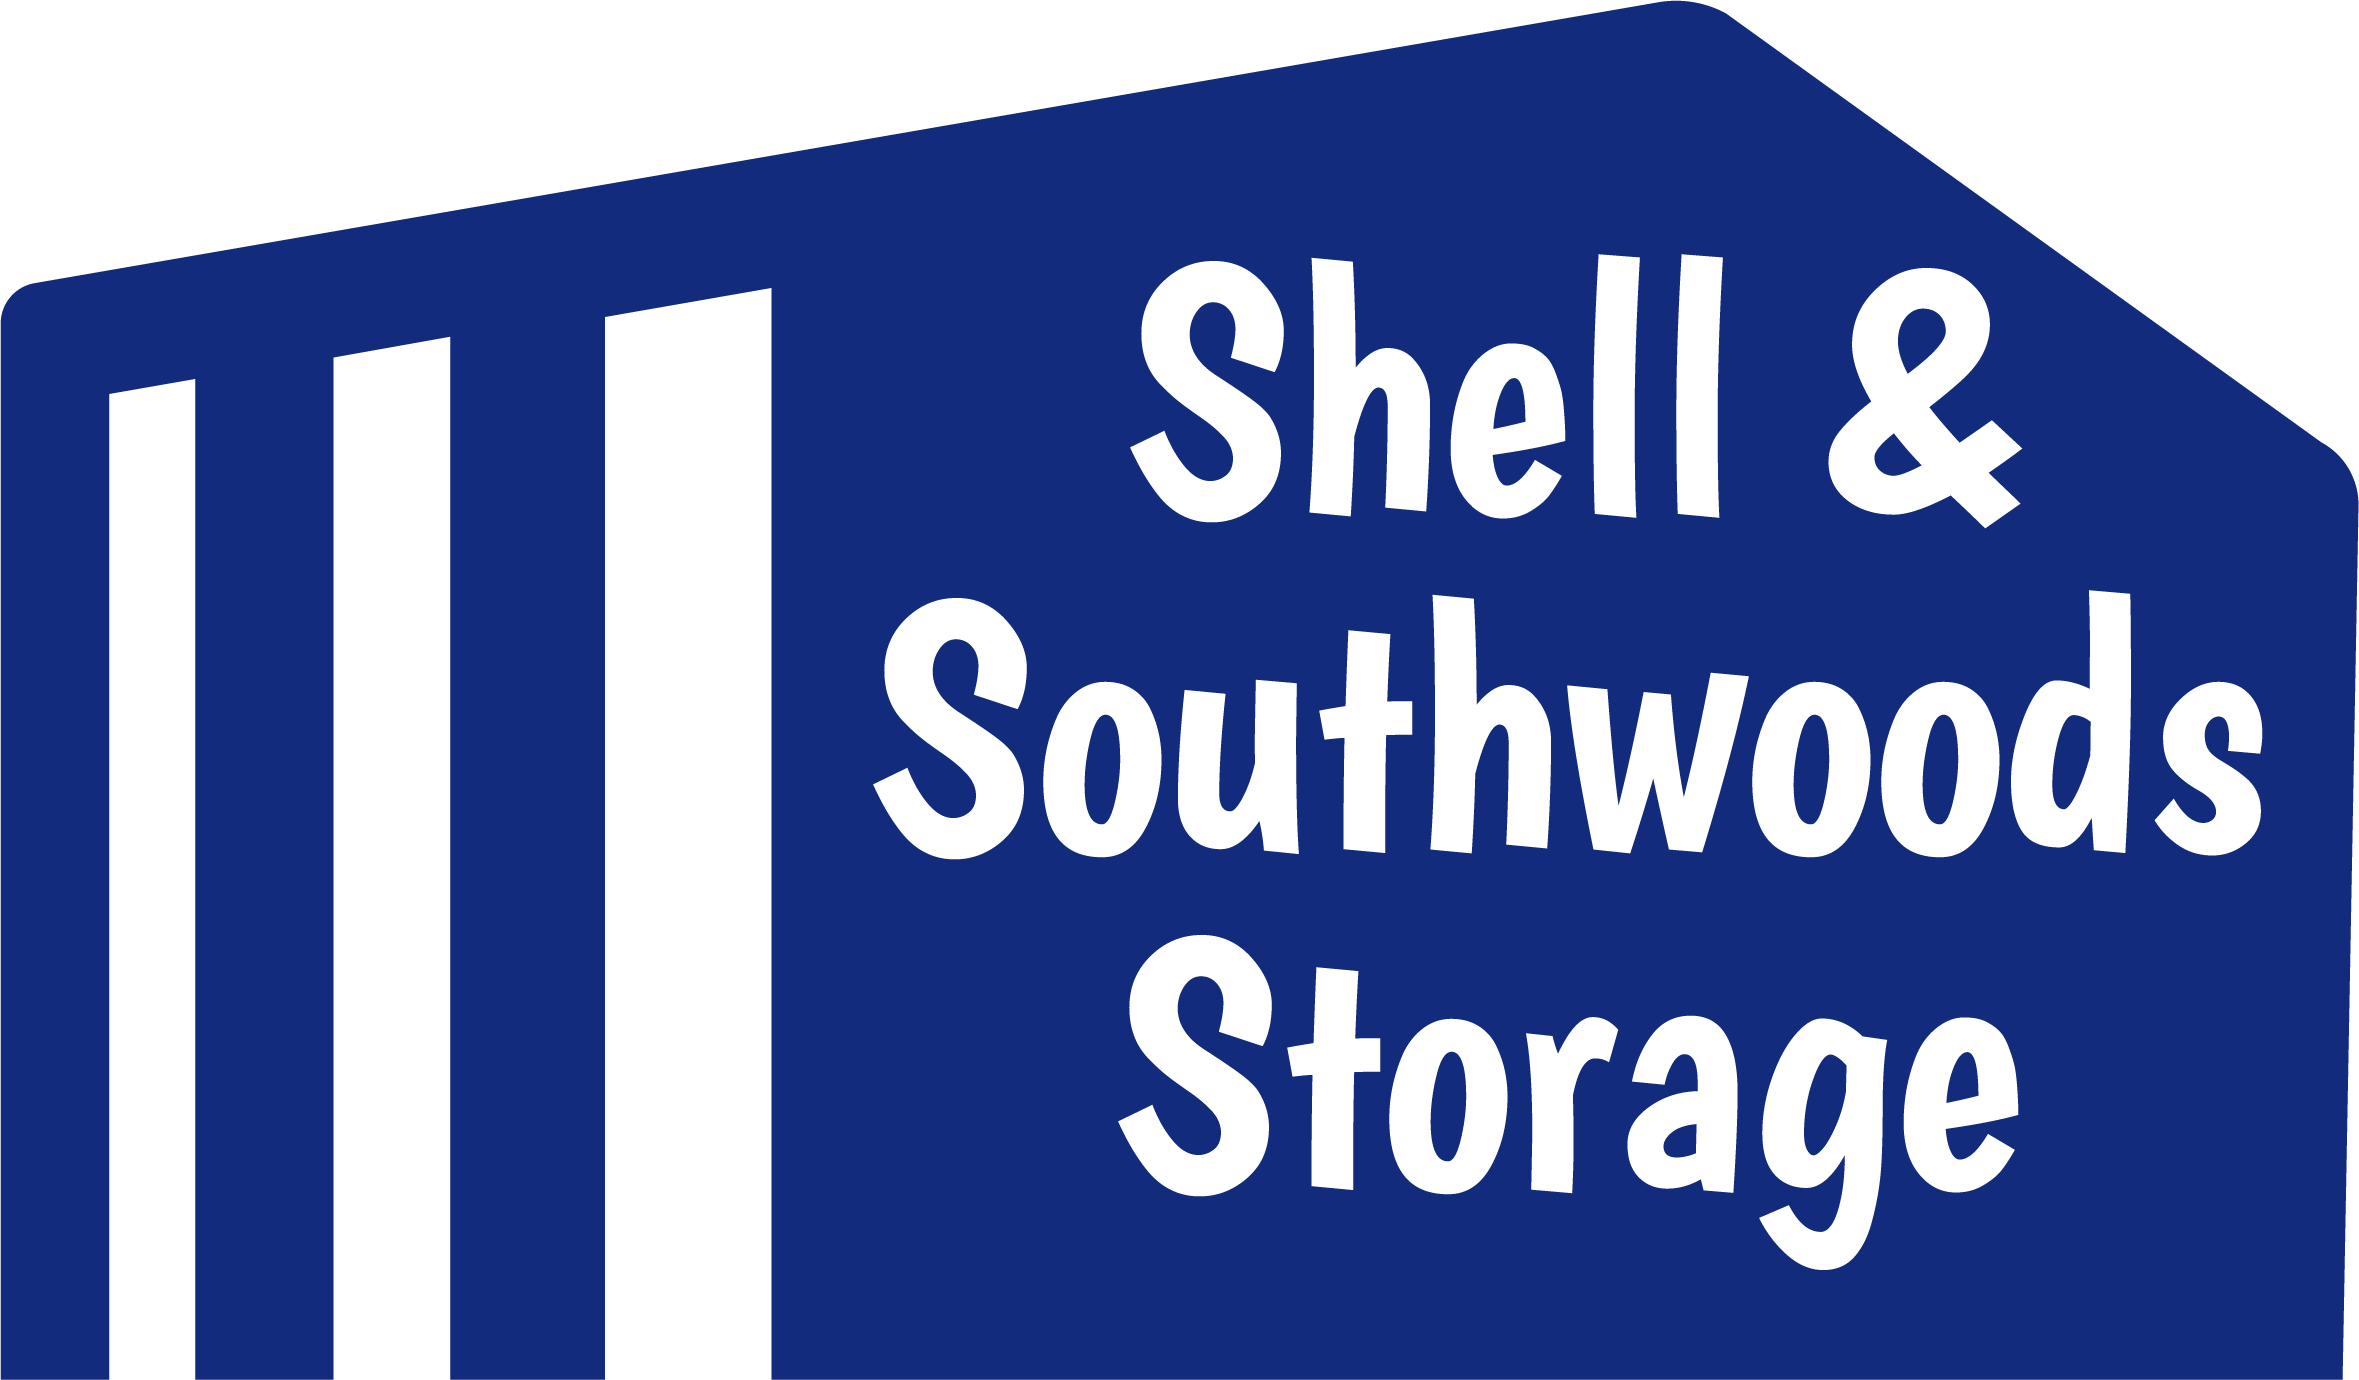 Shell & Southwoods Storage